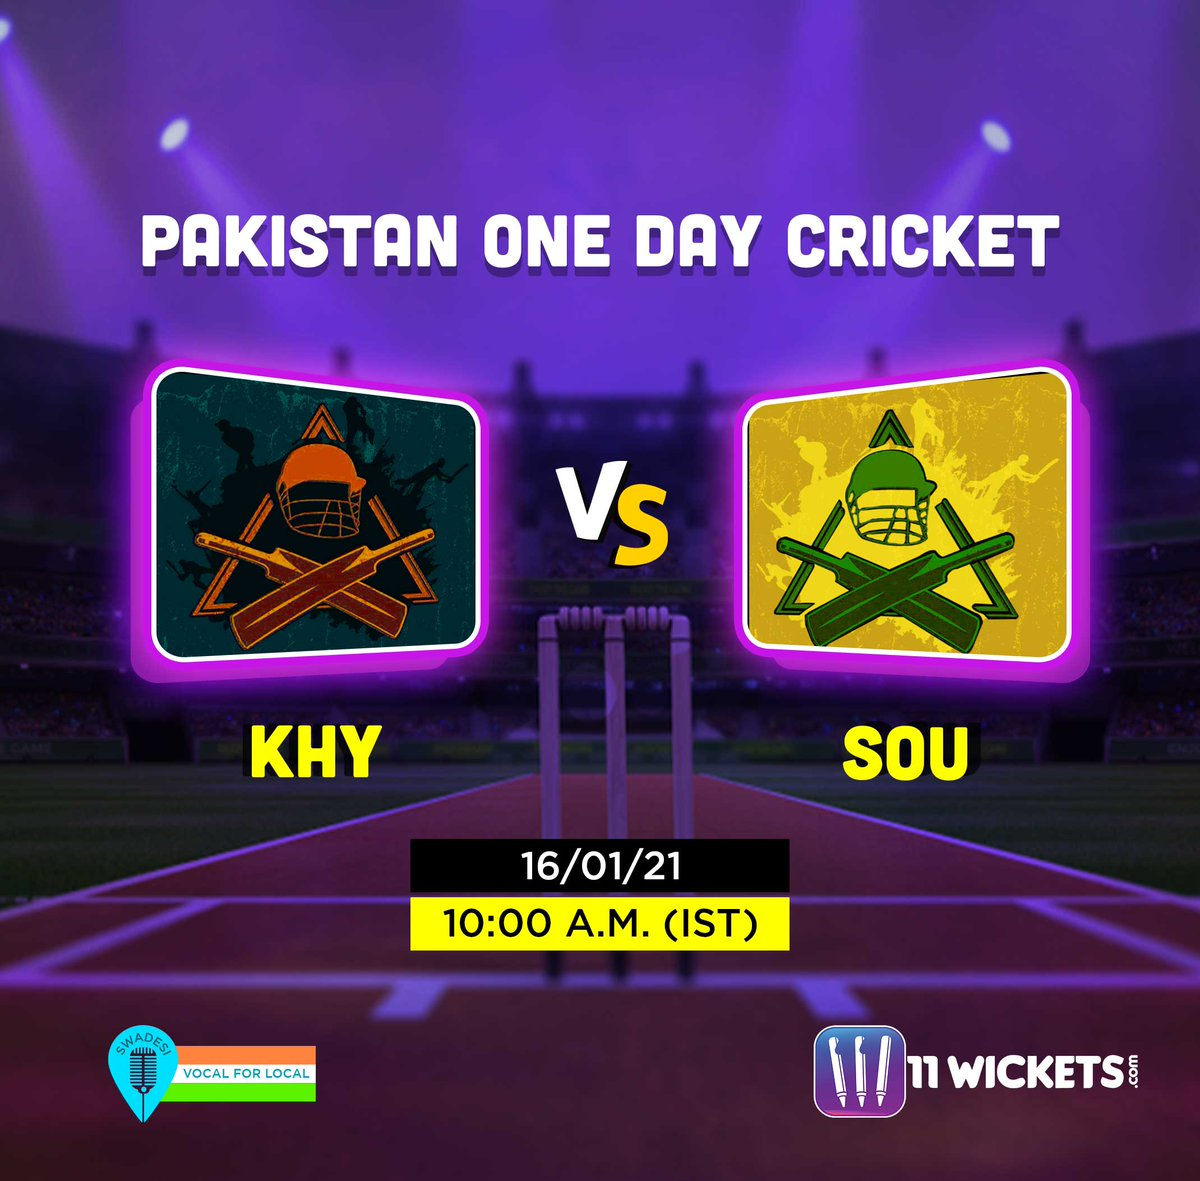 A thrilling match🏏from Pakistan One Day Cricket is here to serve you winnings 🏆 Get set with your team & take part in KHY vs SOU @ 11Wickets 👉    #11Wickets #KaroGyaanKiKamai #PakistanOneDayCricket #ODI #Cricket #CricketMatch #Sports #FantasySports